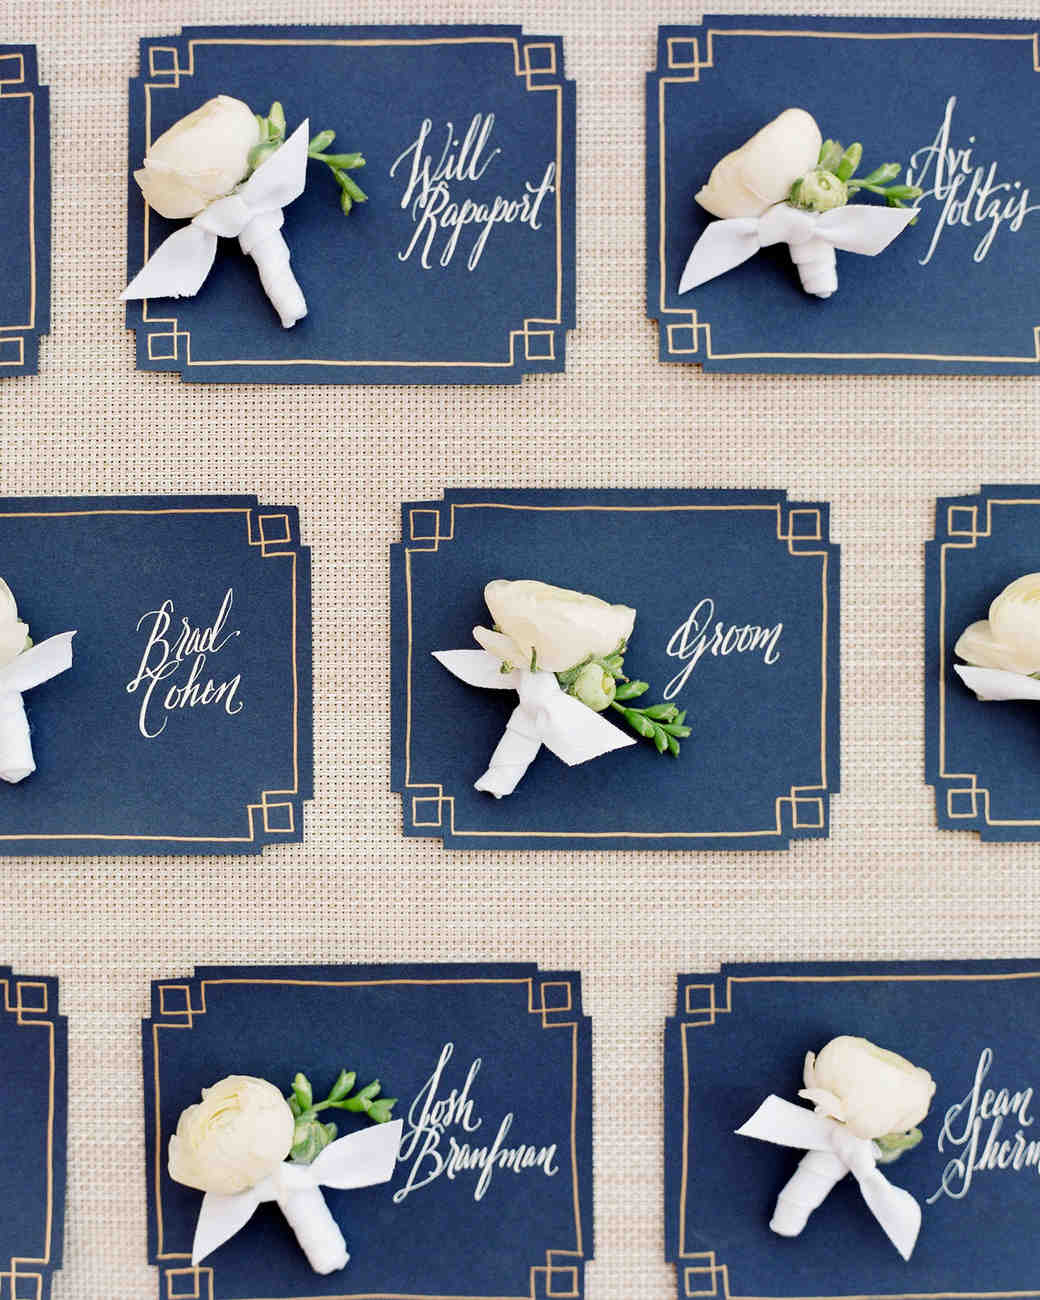 tali-mike-wedding-california-boutonnieres-58500008-s112346.jpg